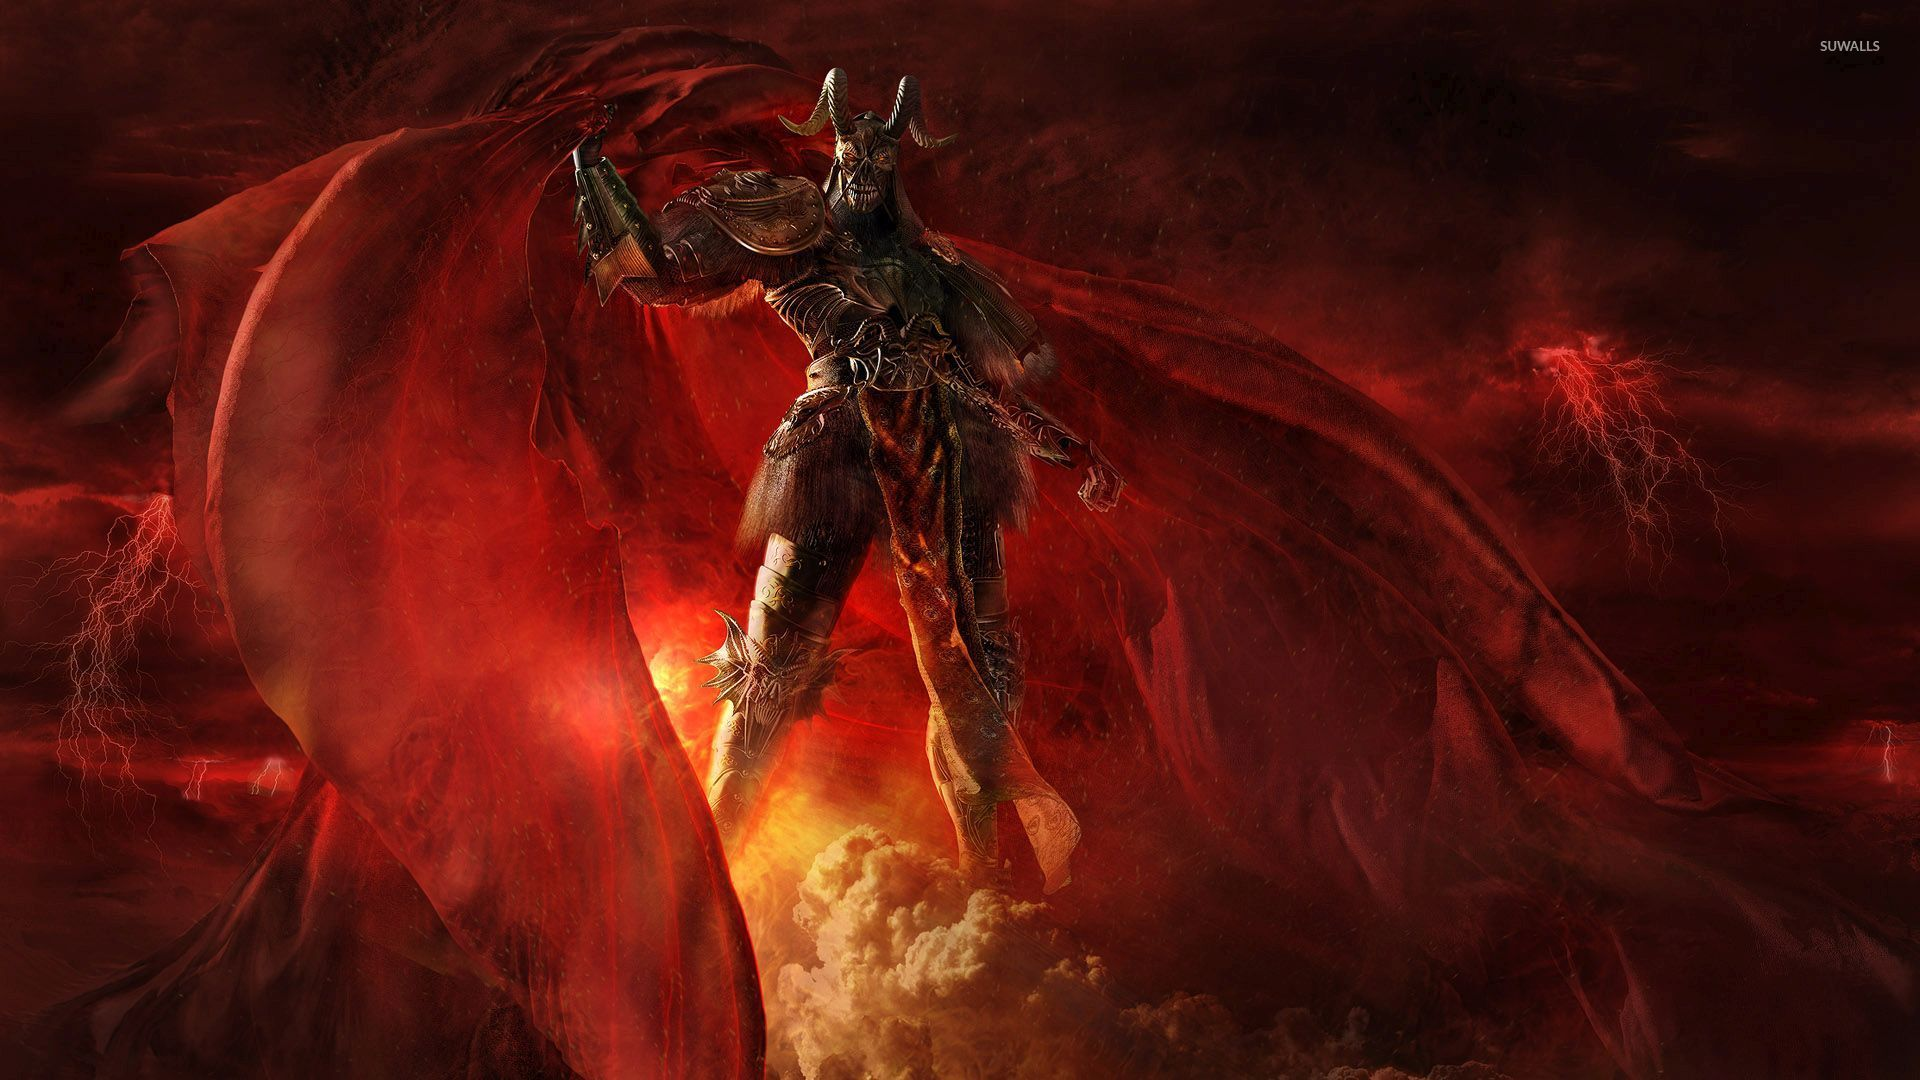 Scary Demon In Hell Wallpaper Fantasy Wallpapers 54038